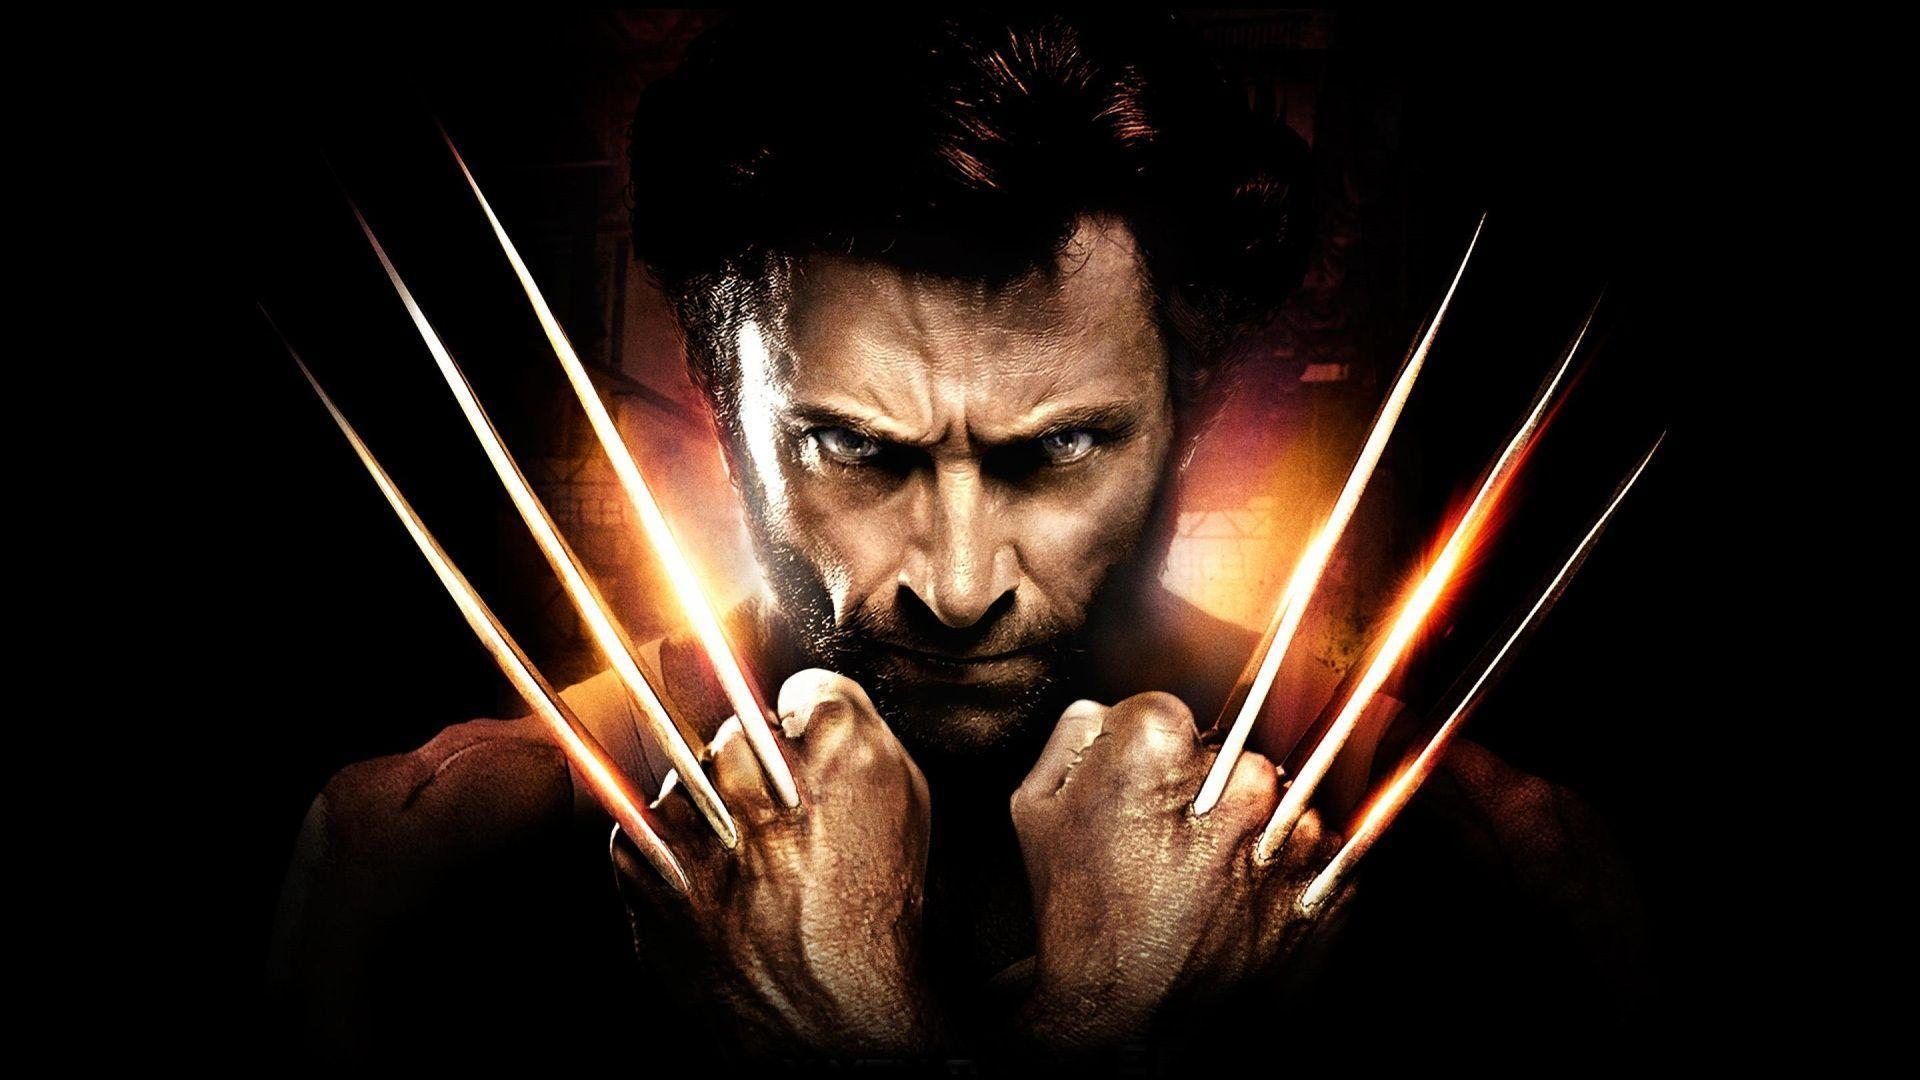 Hugh Jackman as Wolverine 1080p HD Wallpapers Movies